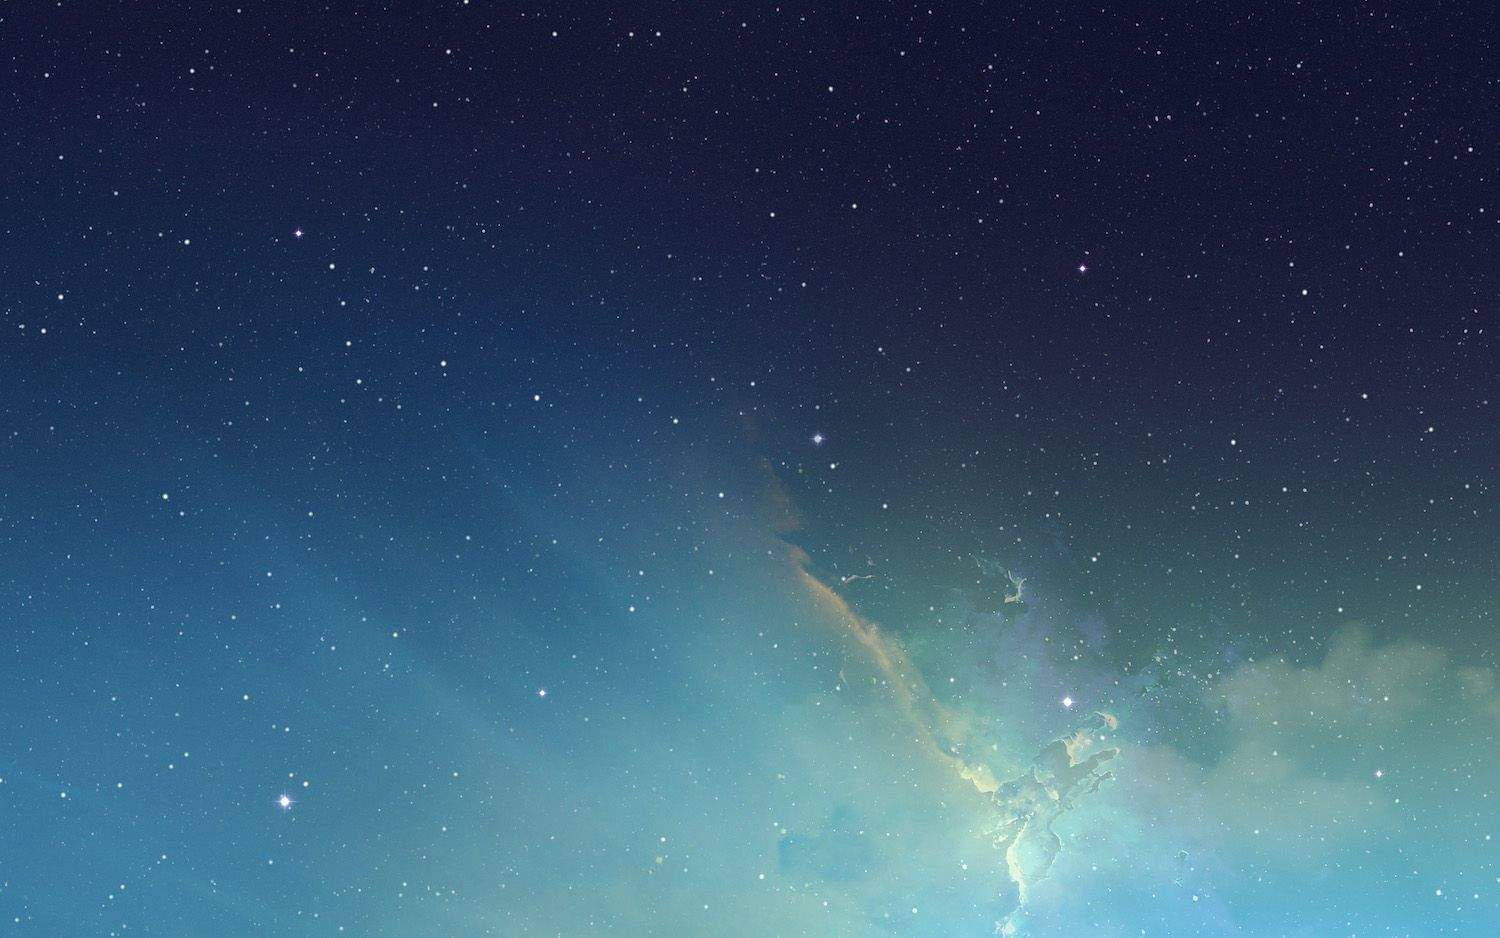 Get iOS 7s Gorgeous Nebula Wallpaper For Your Mac Cult of Mac 1500x938